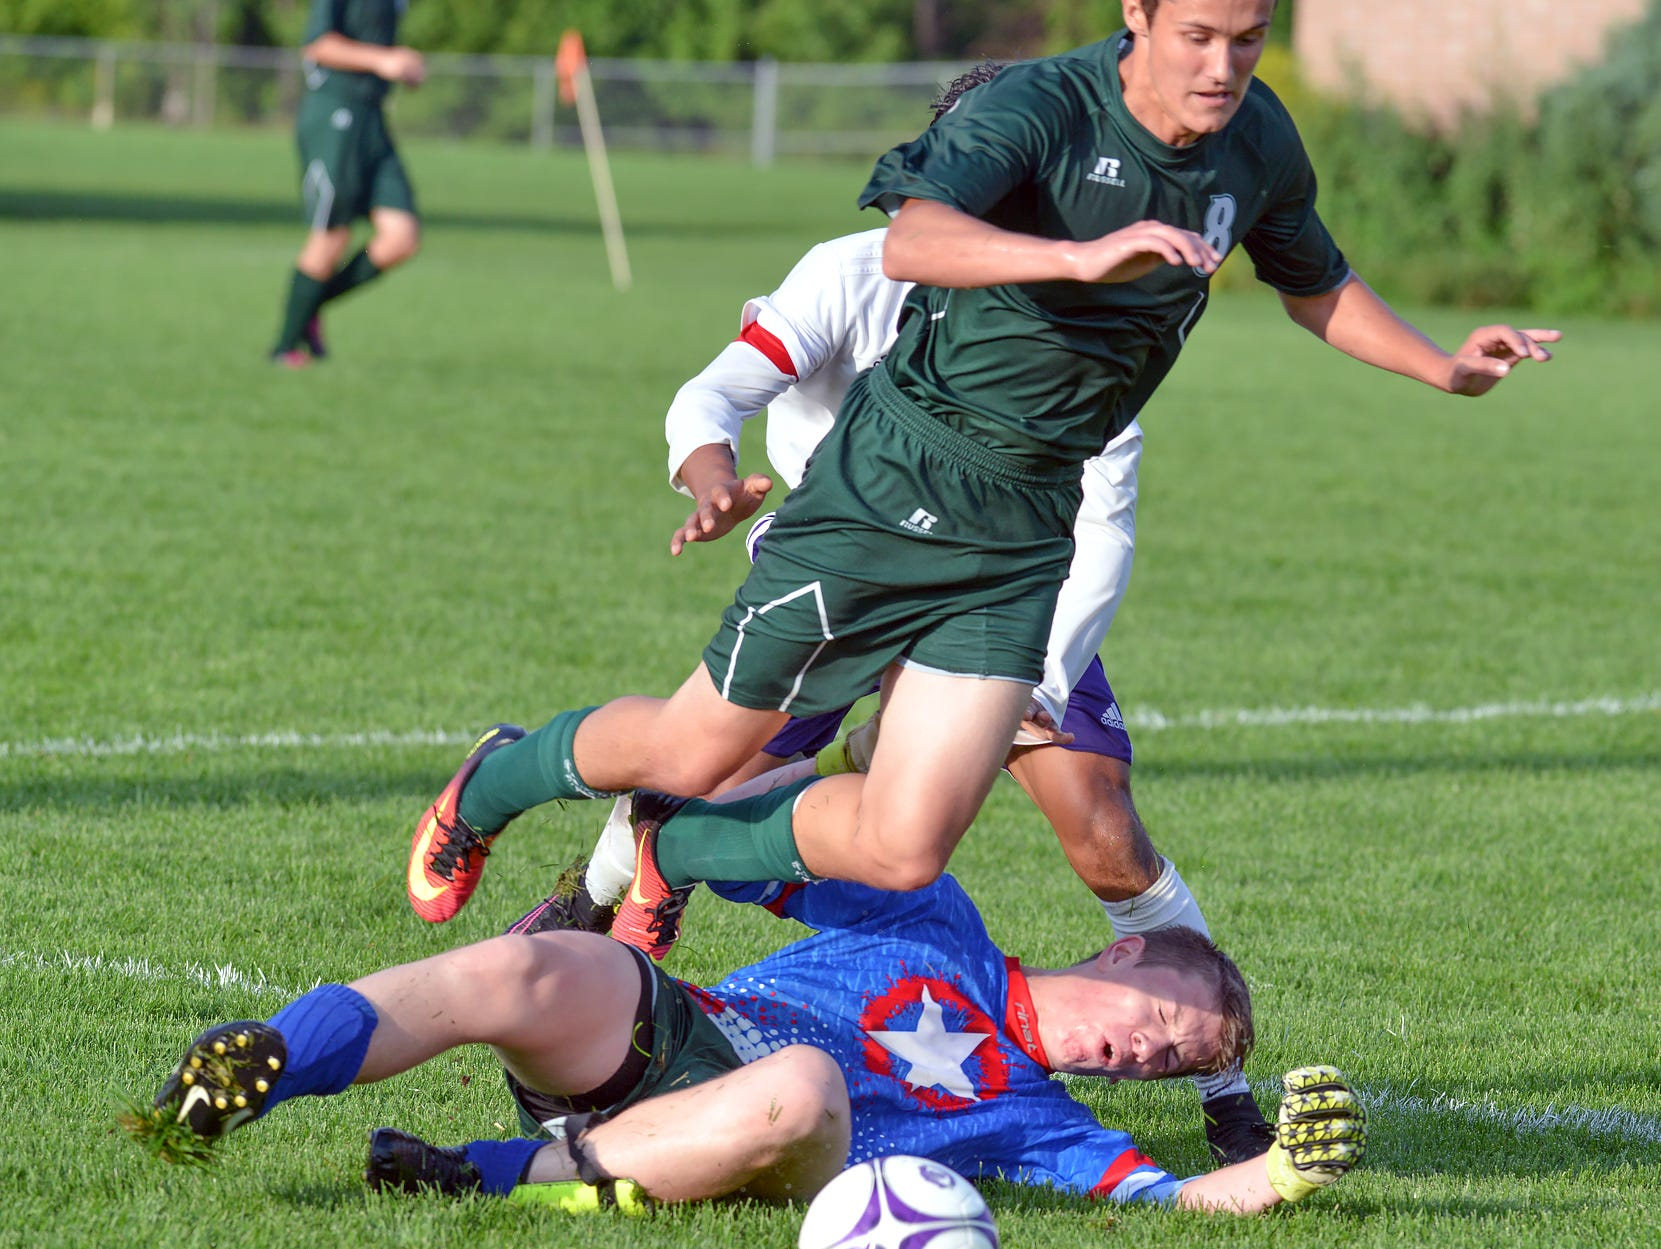 Pennfield goalkeeper Keith Browand slides for the ball during game action Wednesday night.